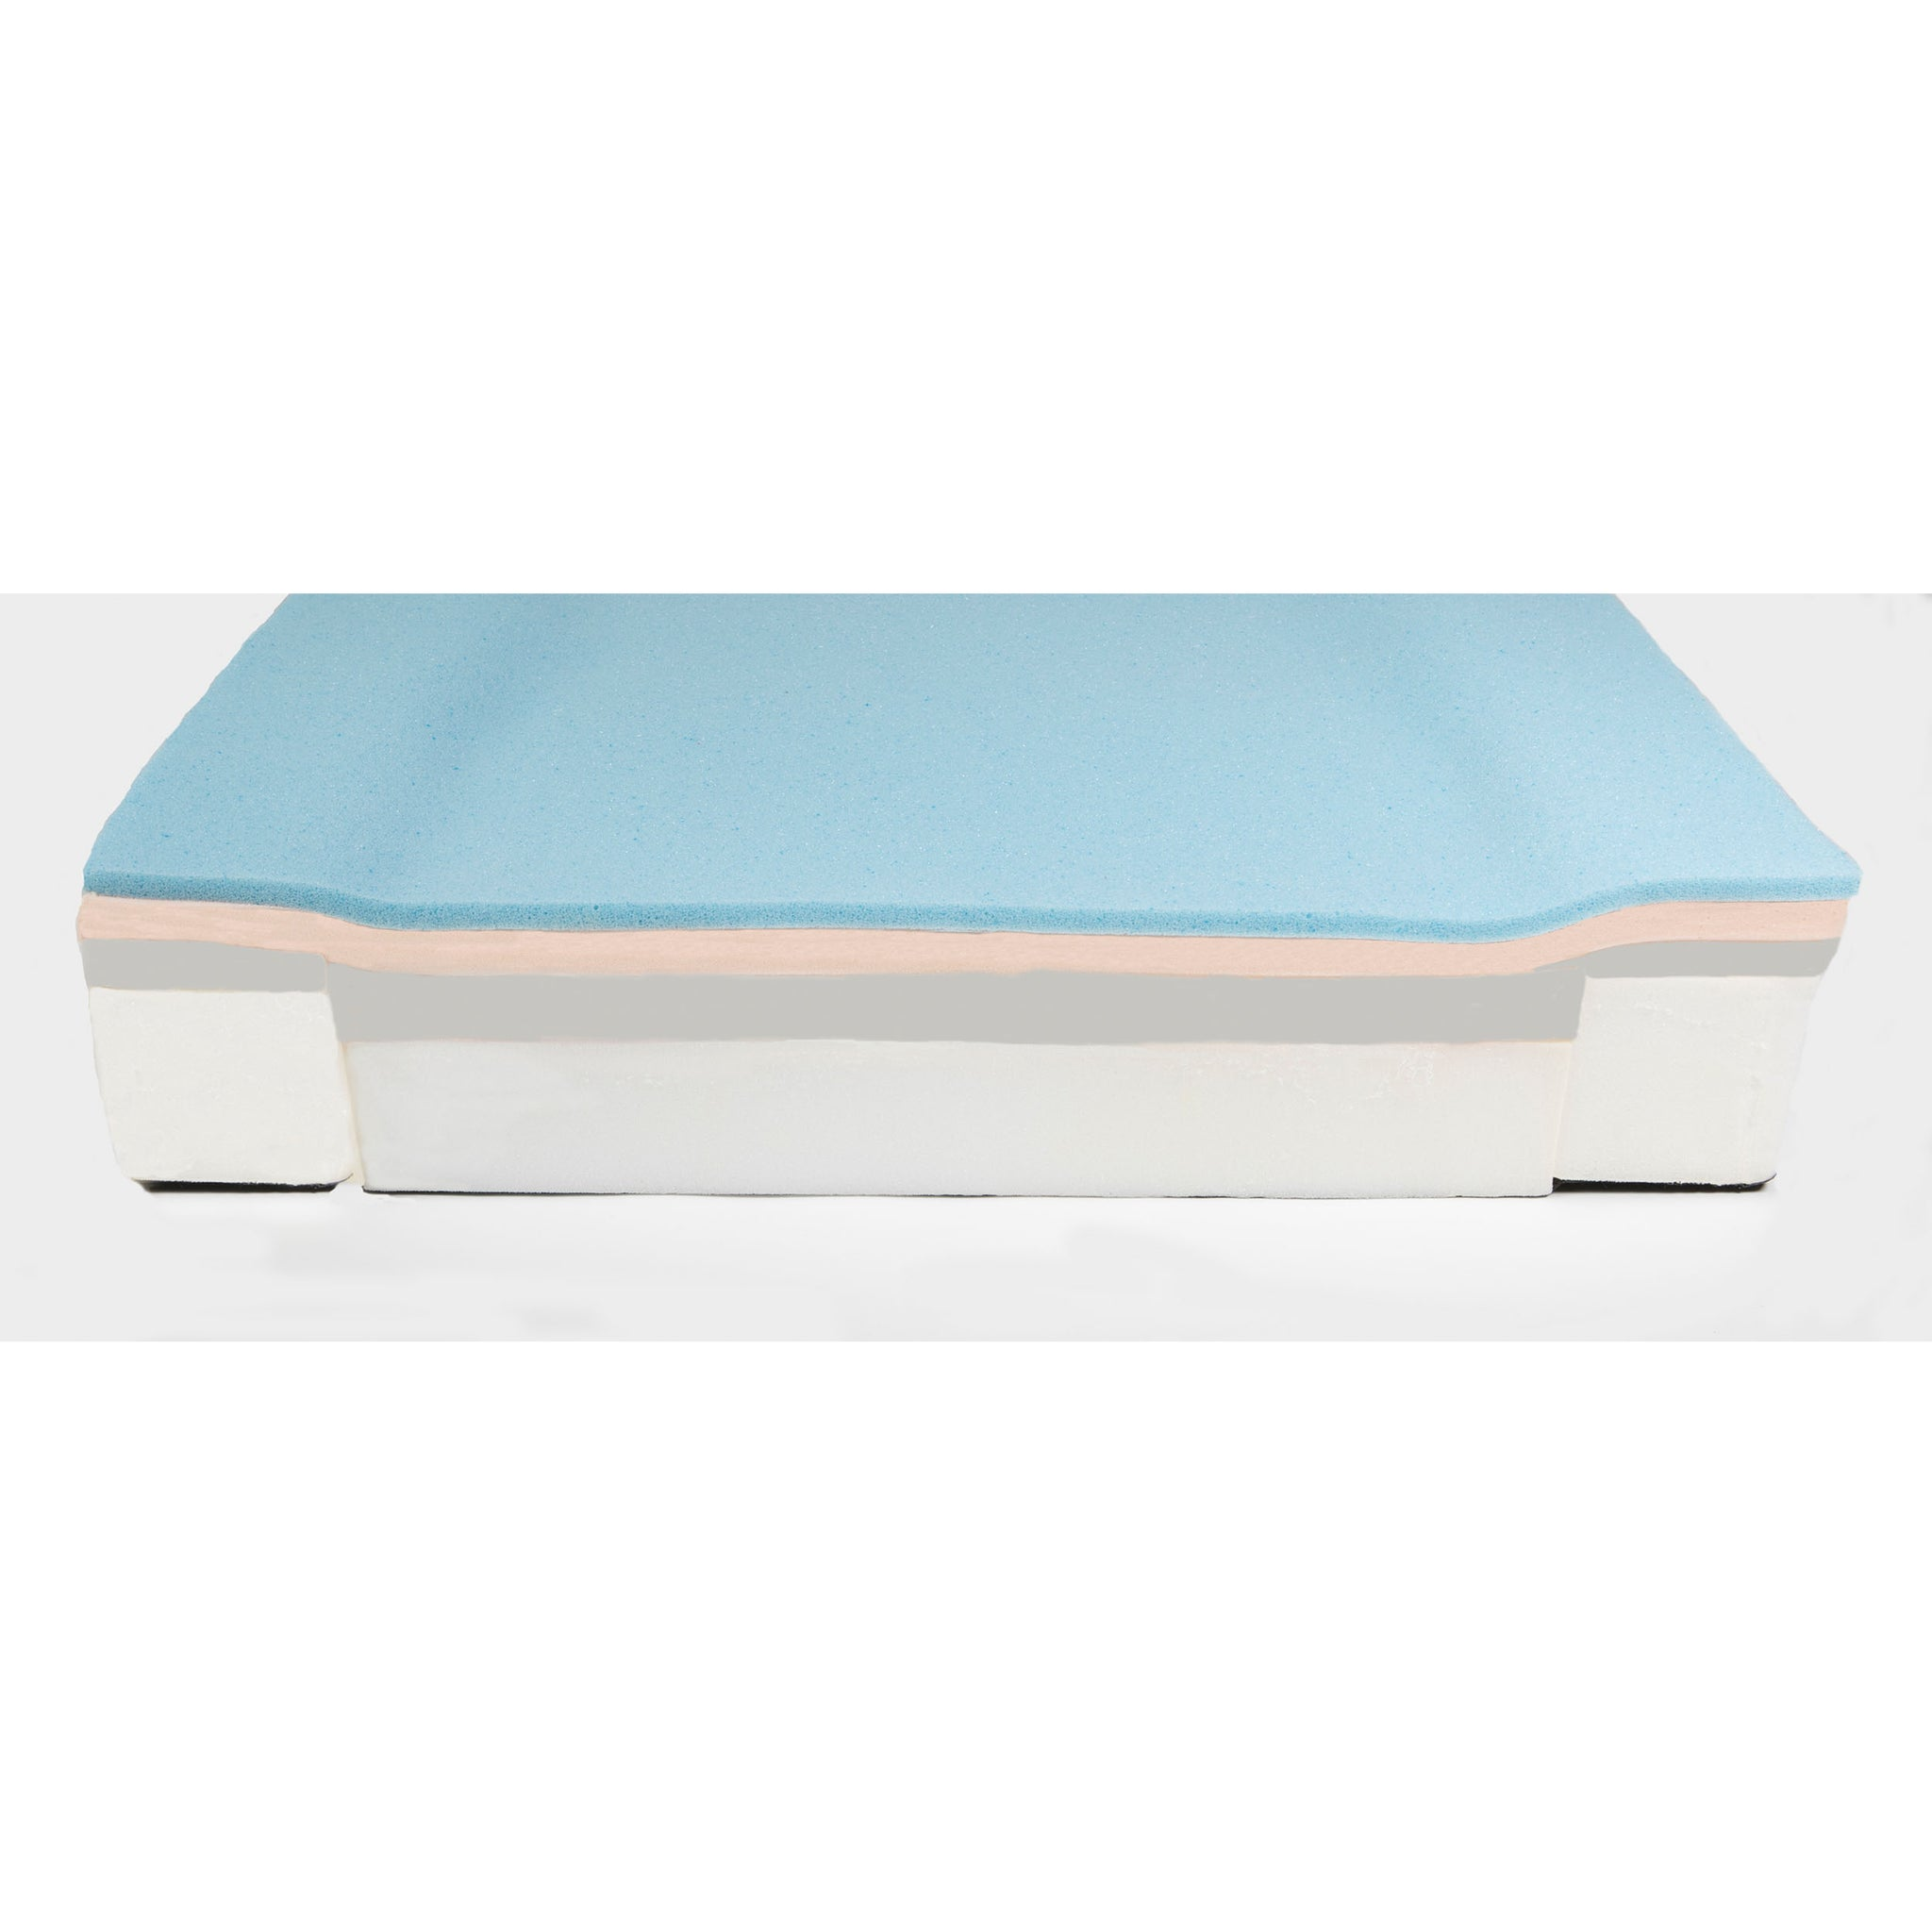 Proactive Protekt® Supreme Support Self-Adjusting Air/Foam Mattress with Optional Alternating Pressure Pump